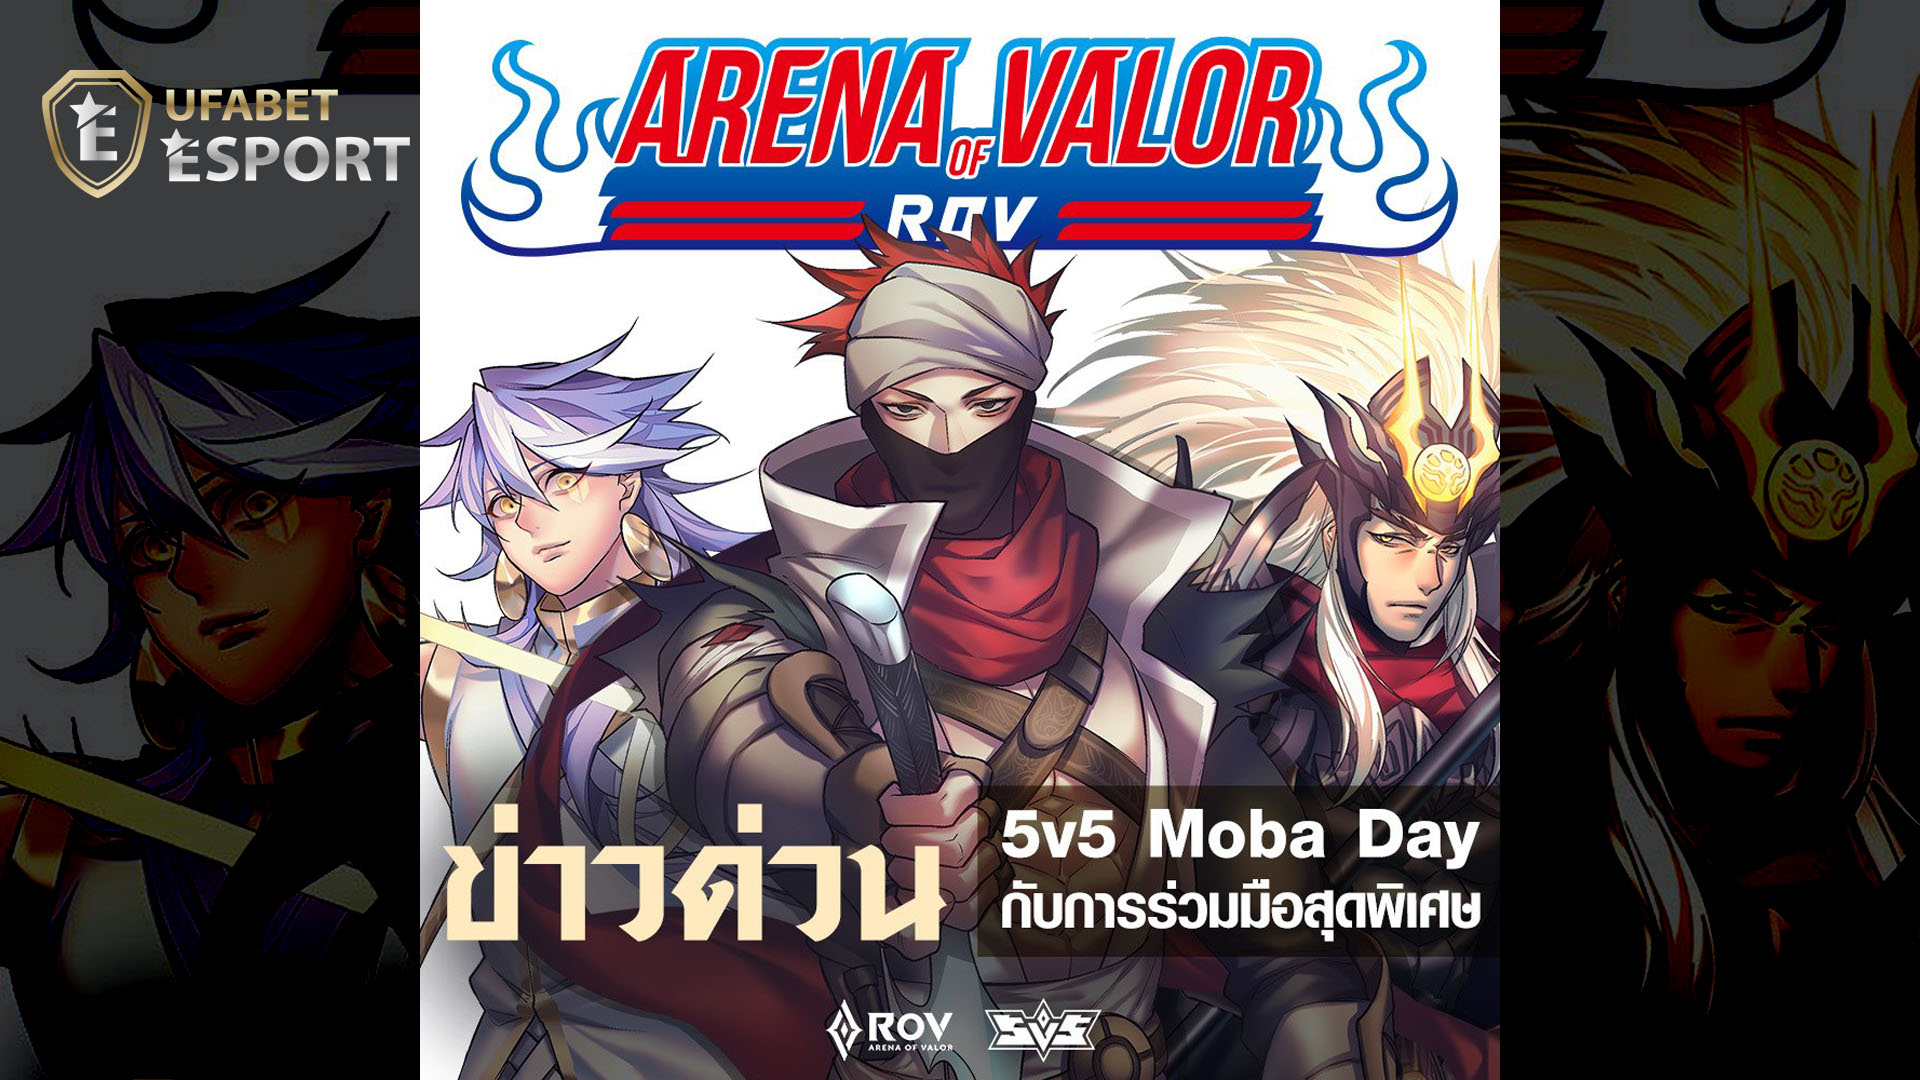 MOBA Day